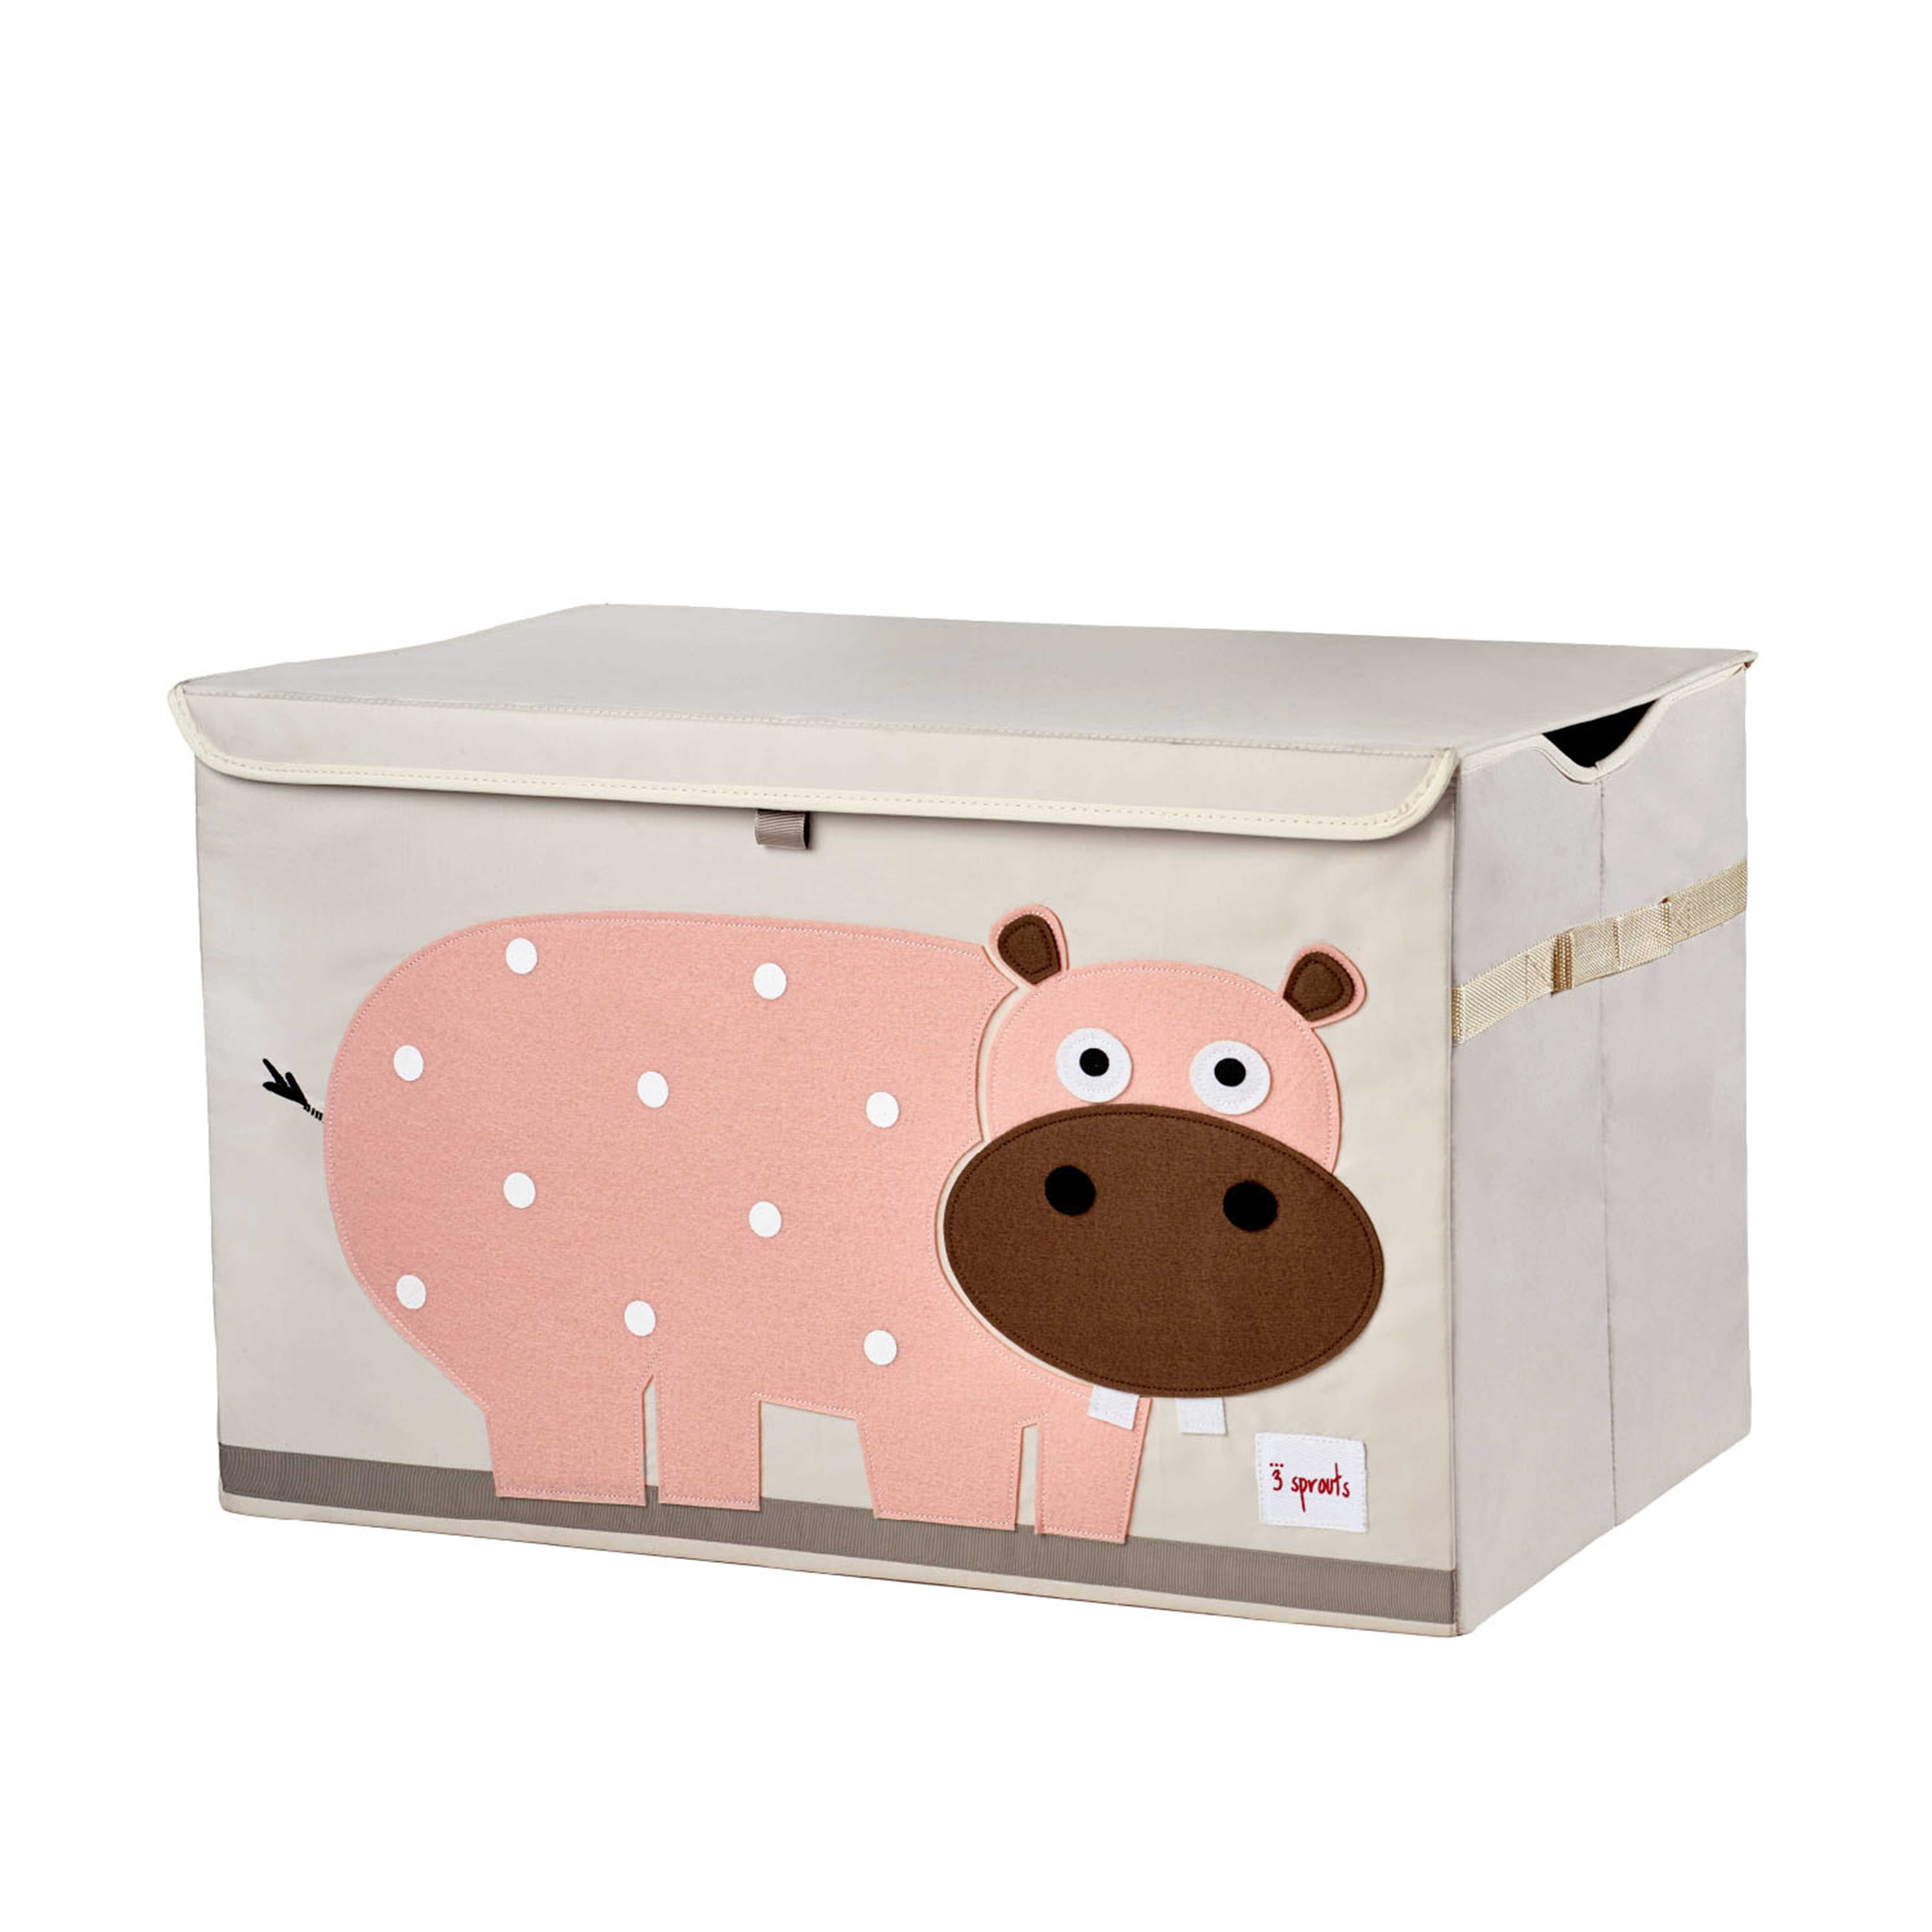 3 sprouts aufbewahrungsbox mit deckel hippo. Black Bedroom Furniture Sets. Home Design Ideas